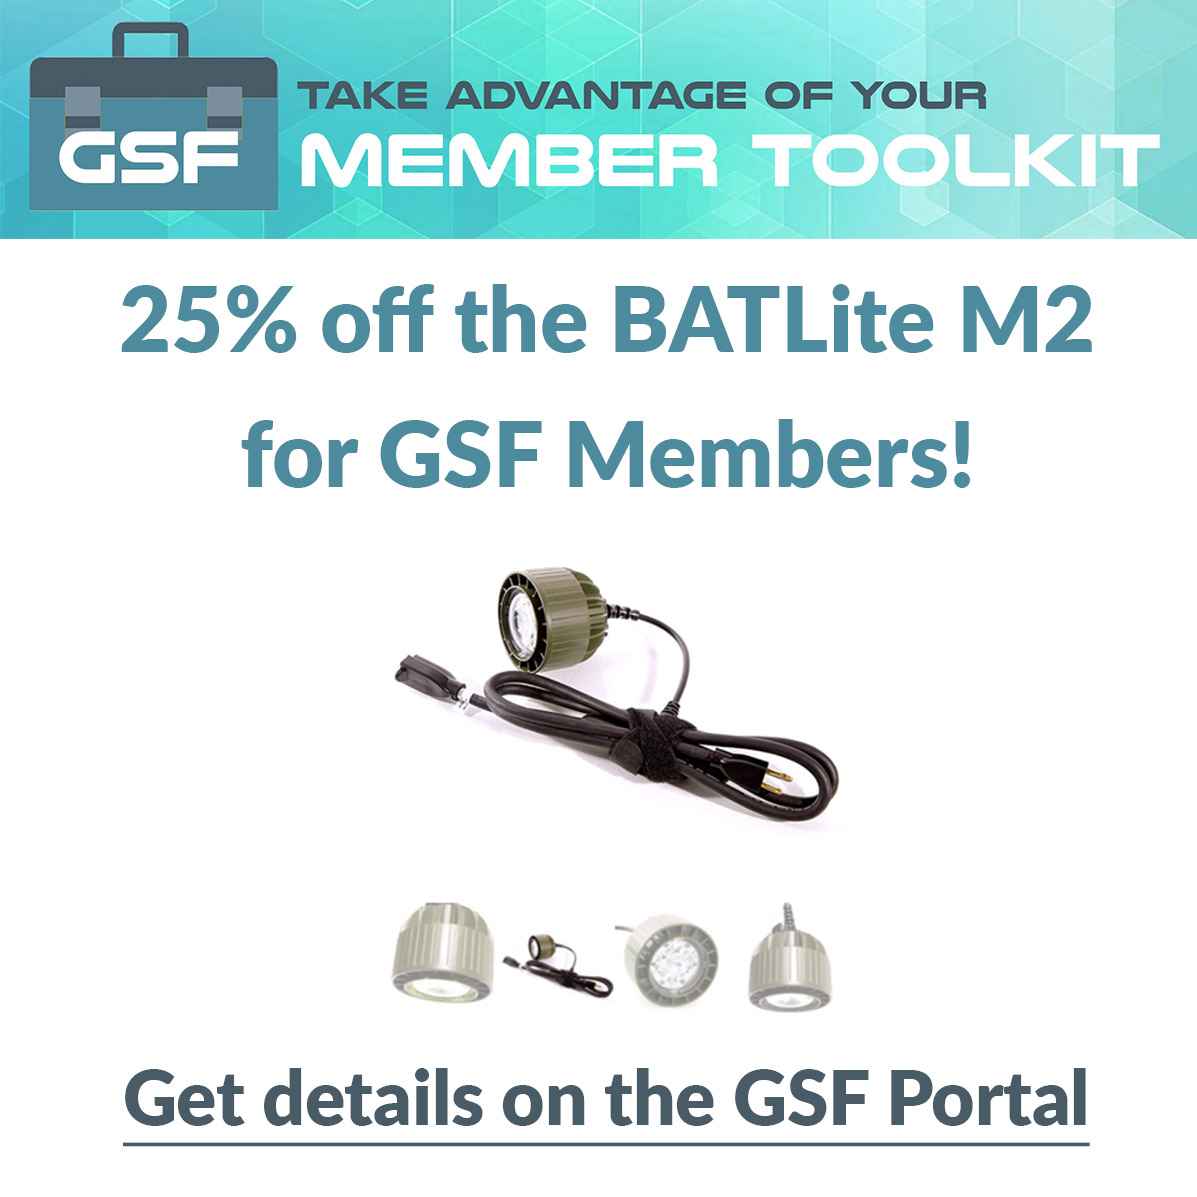 It's here! The new GSF User Portal.